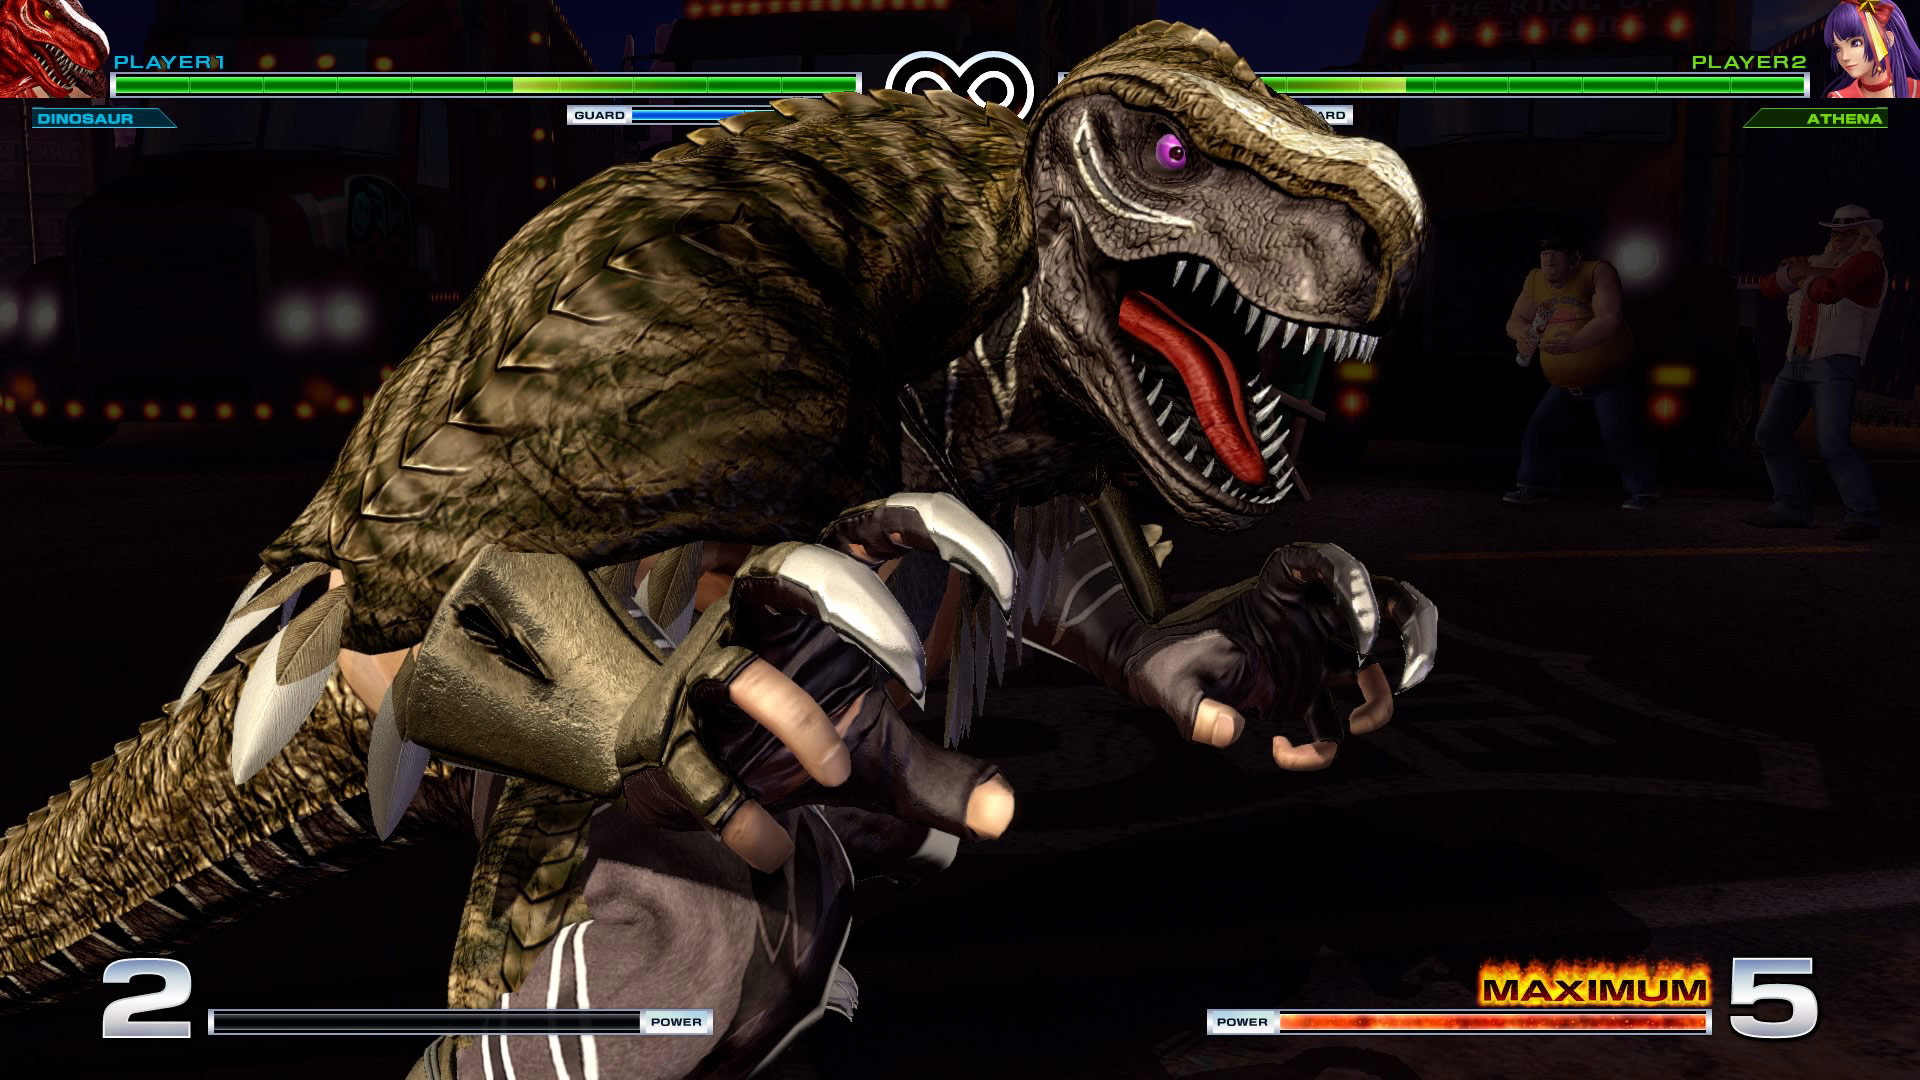 King of Fighters 14 1.10 graphics update 57 out of 60 image gallery